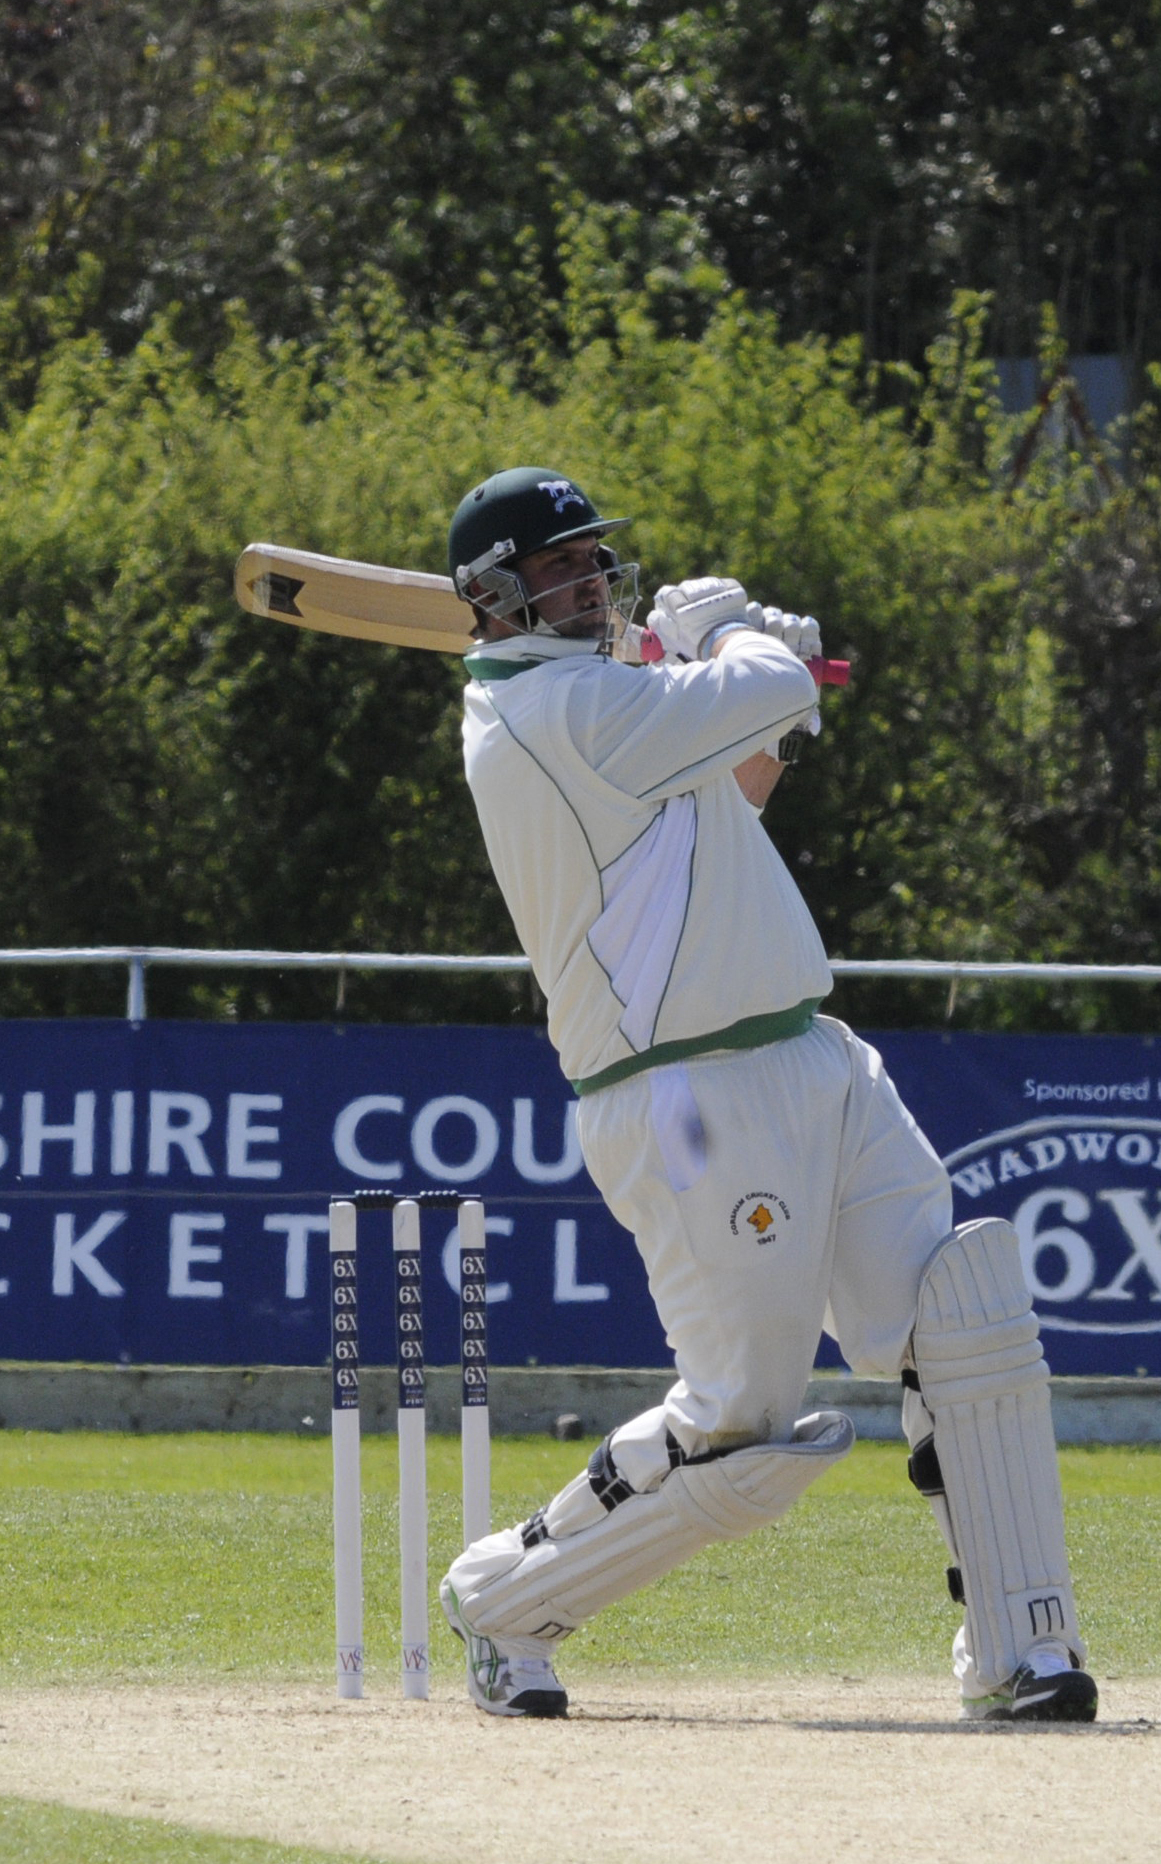 Corsham's Mike Coles scored an unbeaten 150 in his side's win over Bridgwater last weekend